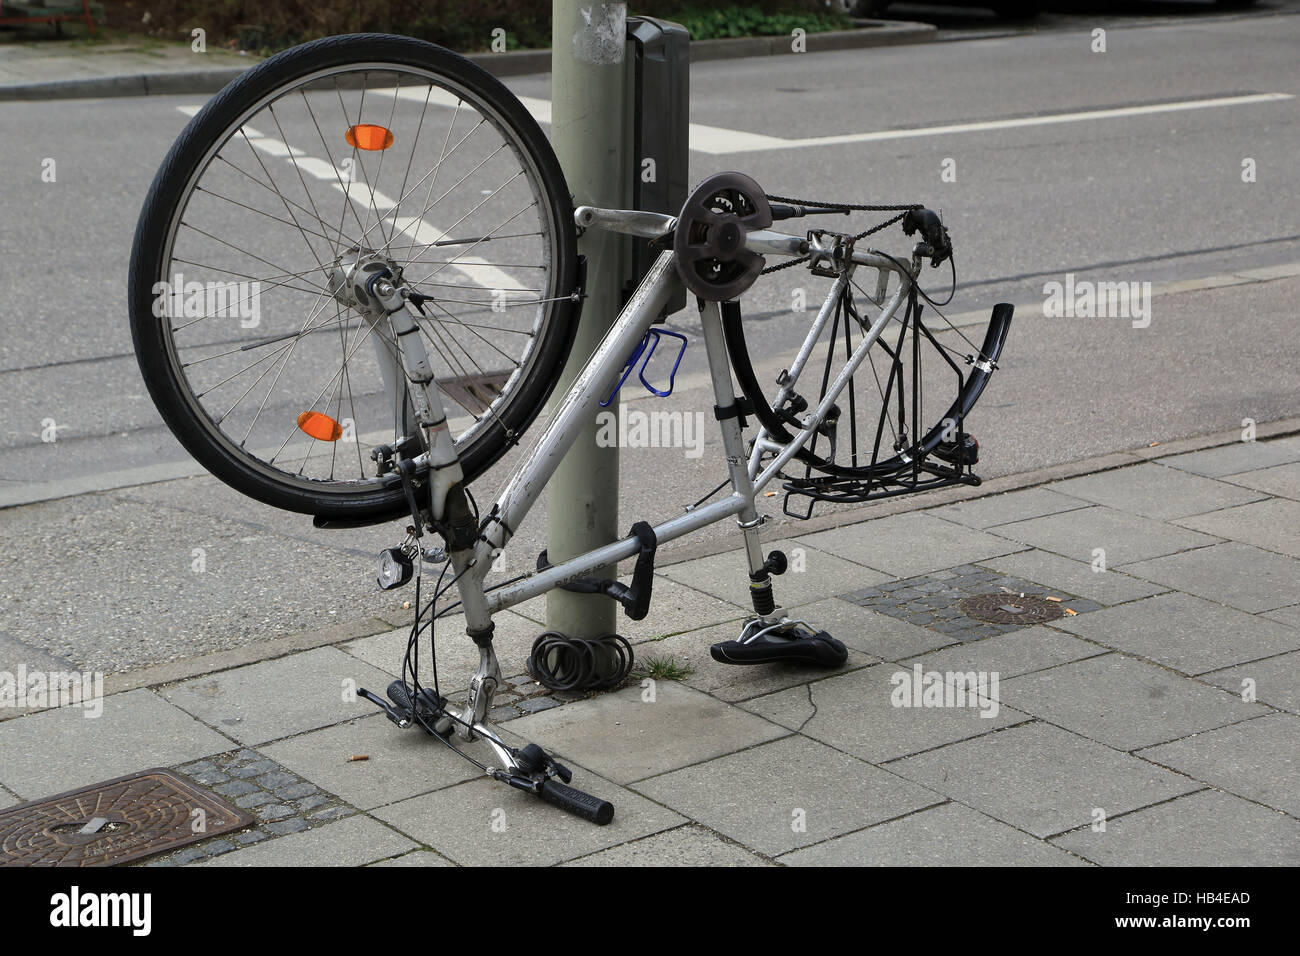 Theft of property and parts of a bicycle - Stock Image